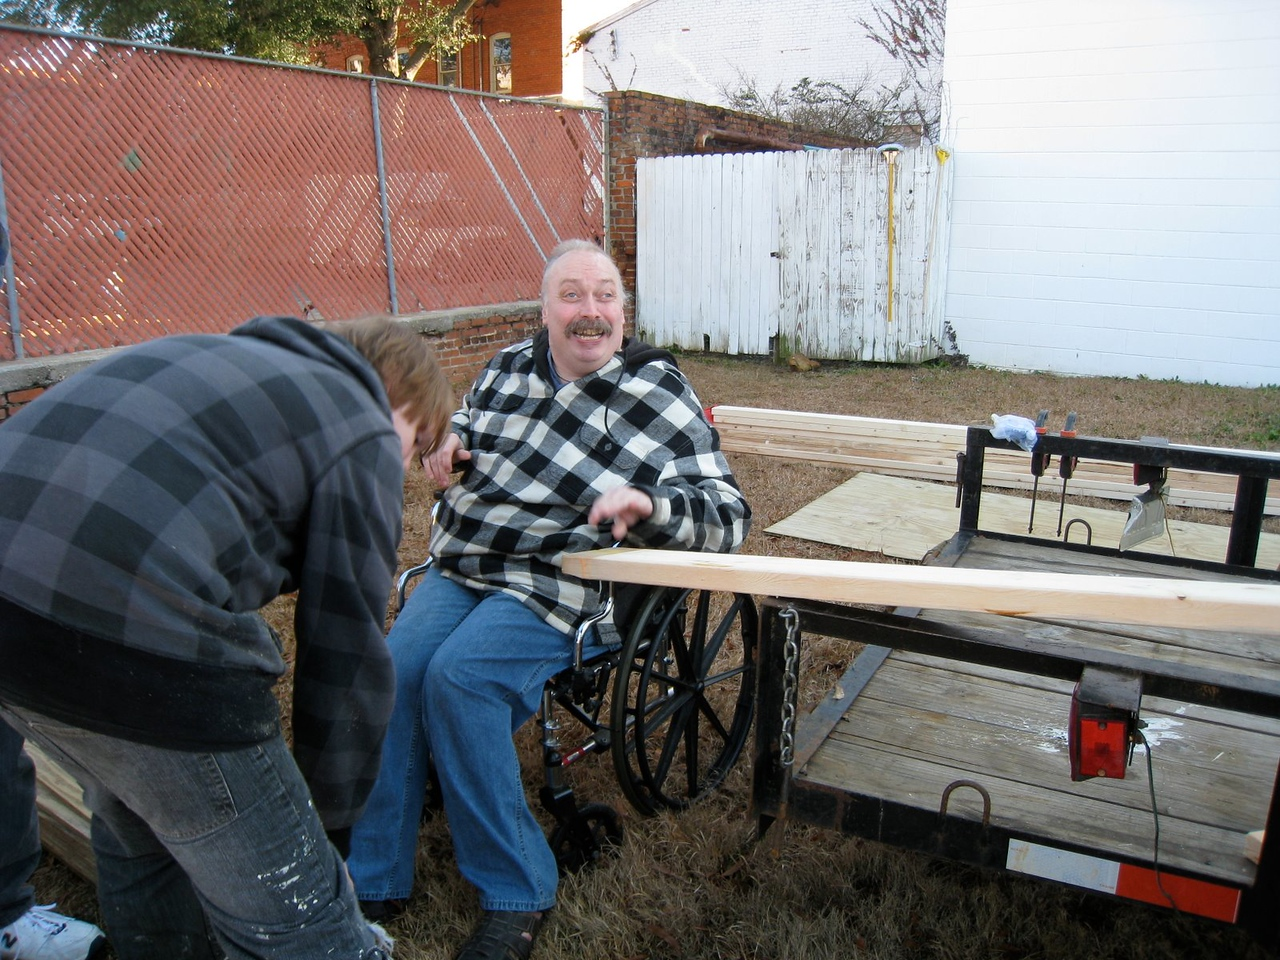 10 1-17 MLK Day - Chuck Davis gives a hand to holding boards for the table saw.  ky